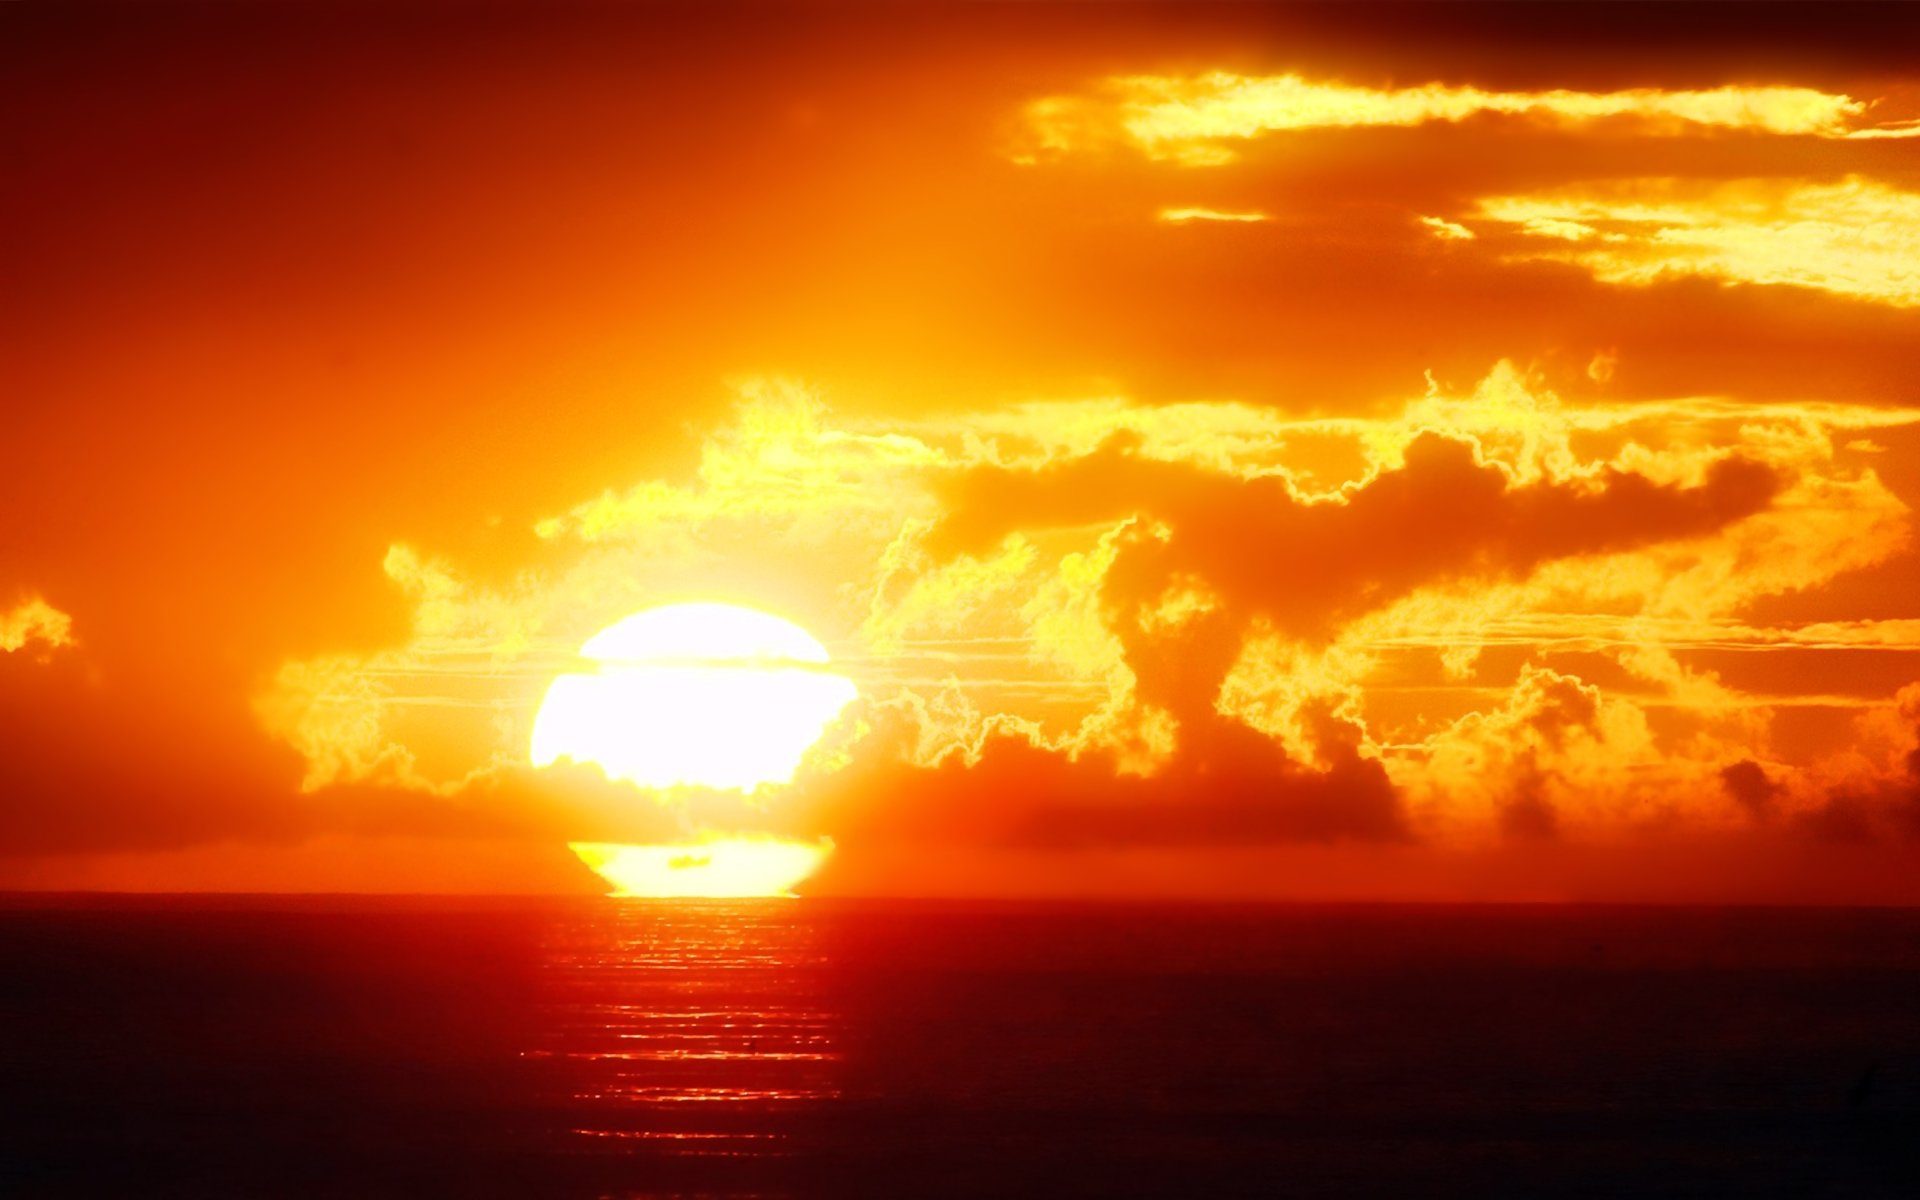 Earth - Sunset  Sun Landscape Orange Ocean Sea Nature Earth Cloud Sky Wallpaper